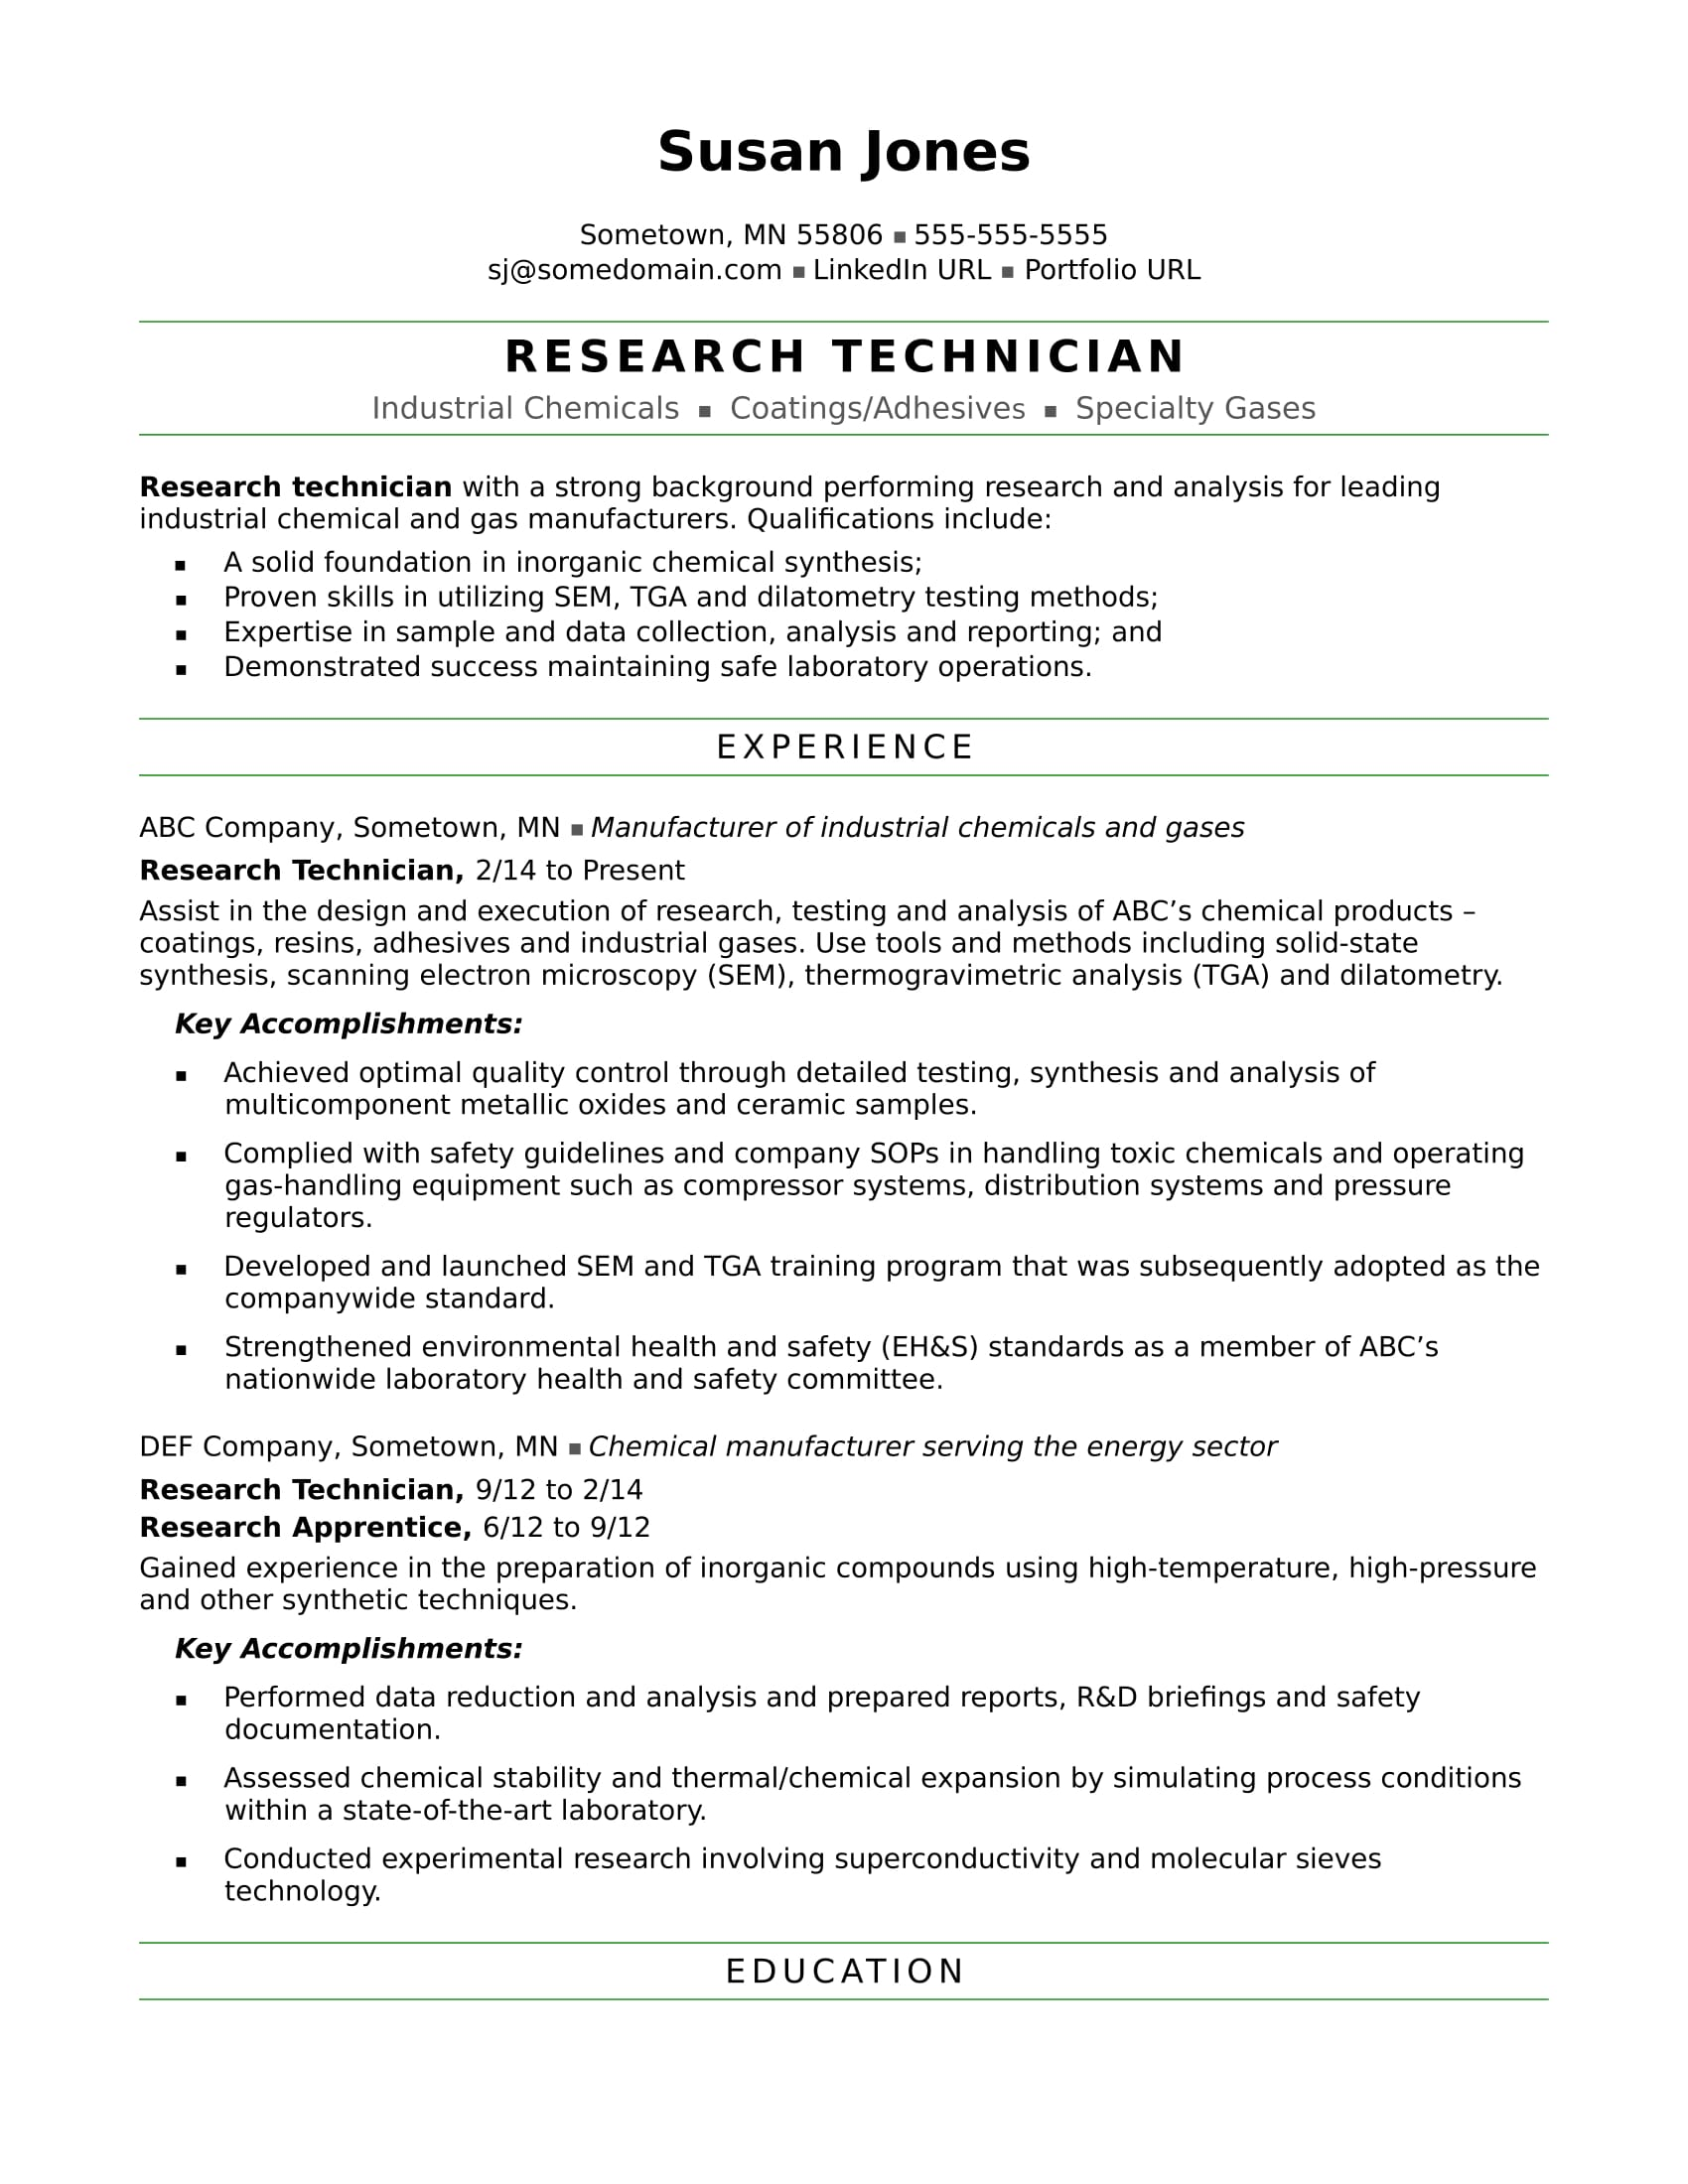 sample resume for a research technician - Chemical Technician Resume